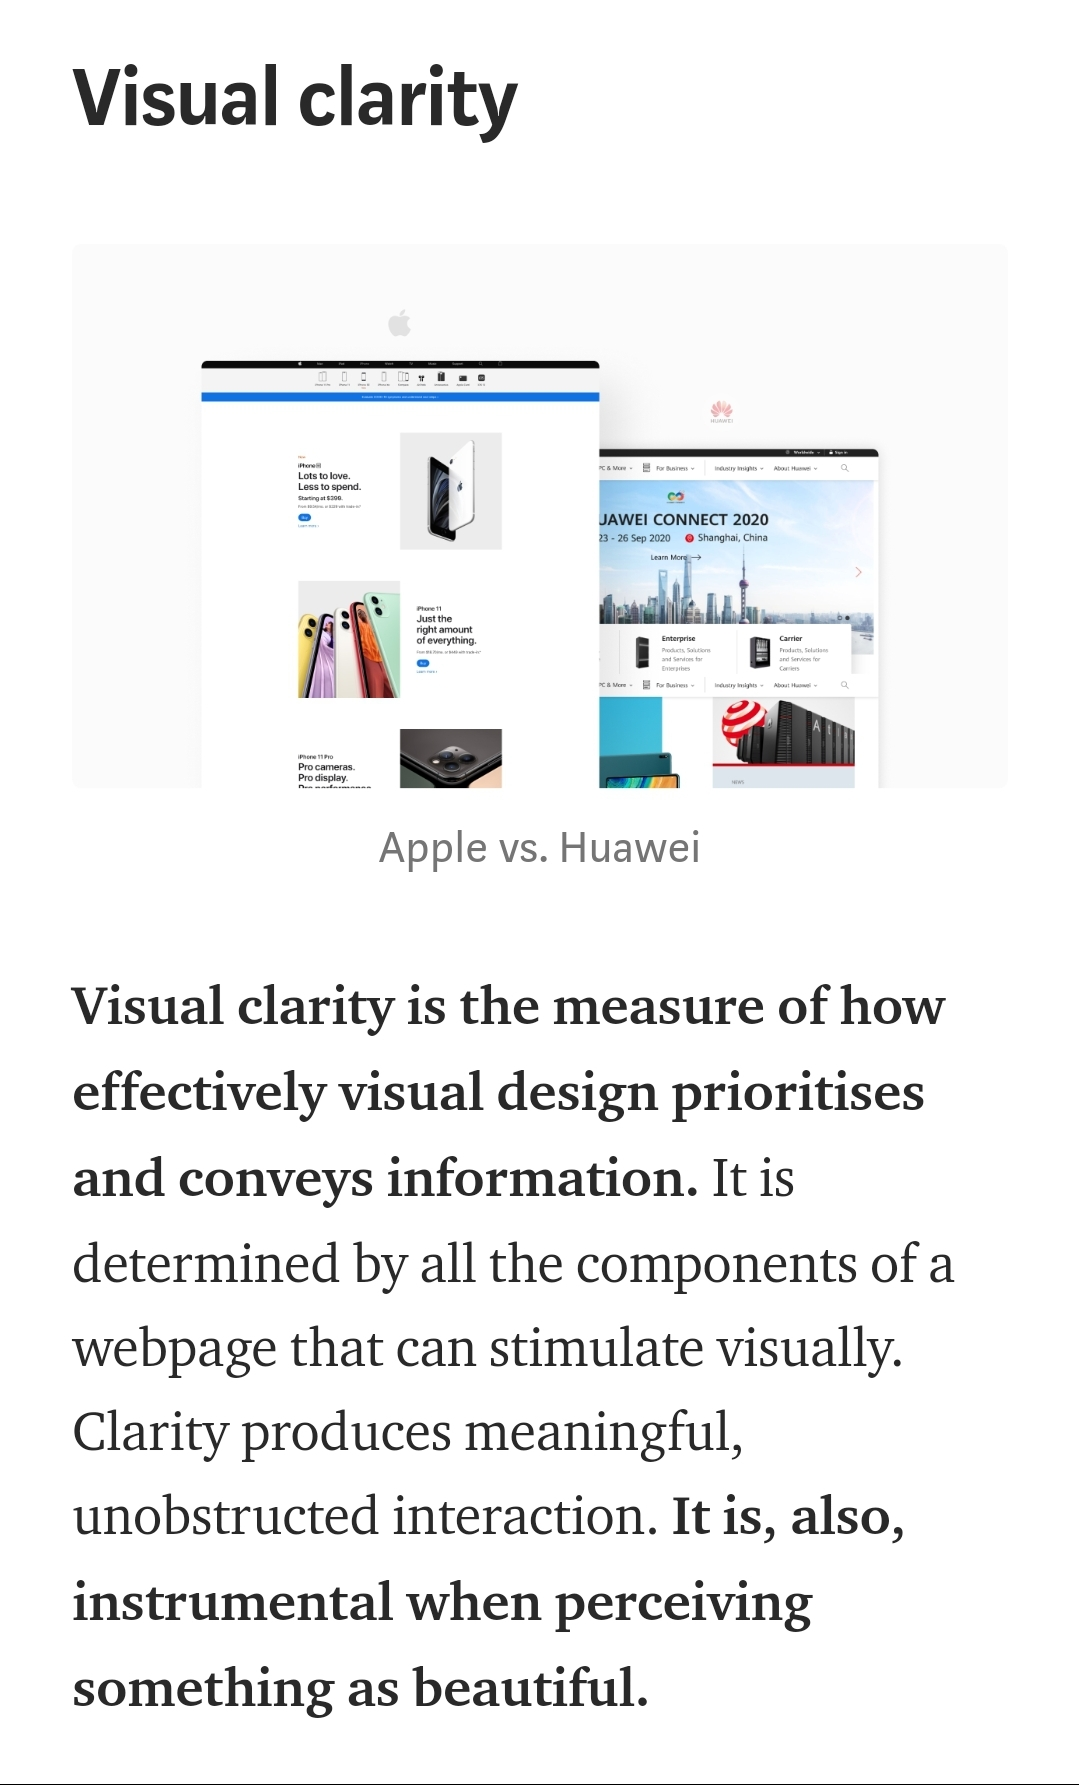 Image-visual-claeity-example-UX-collective